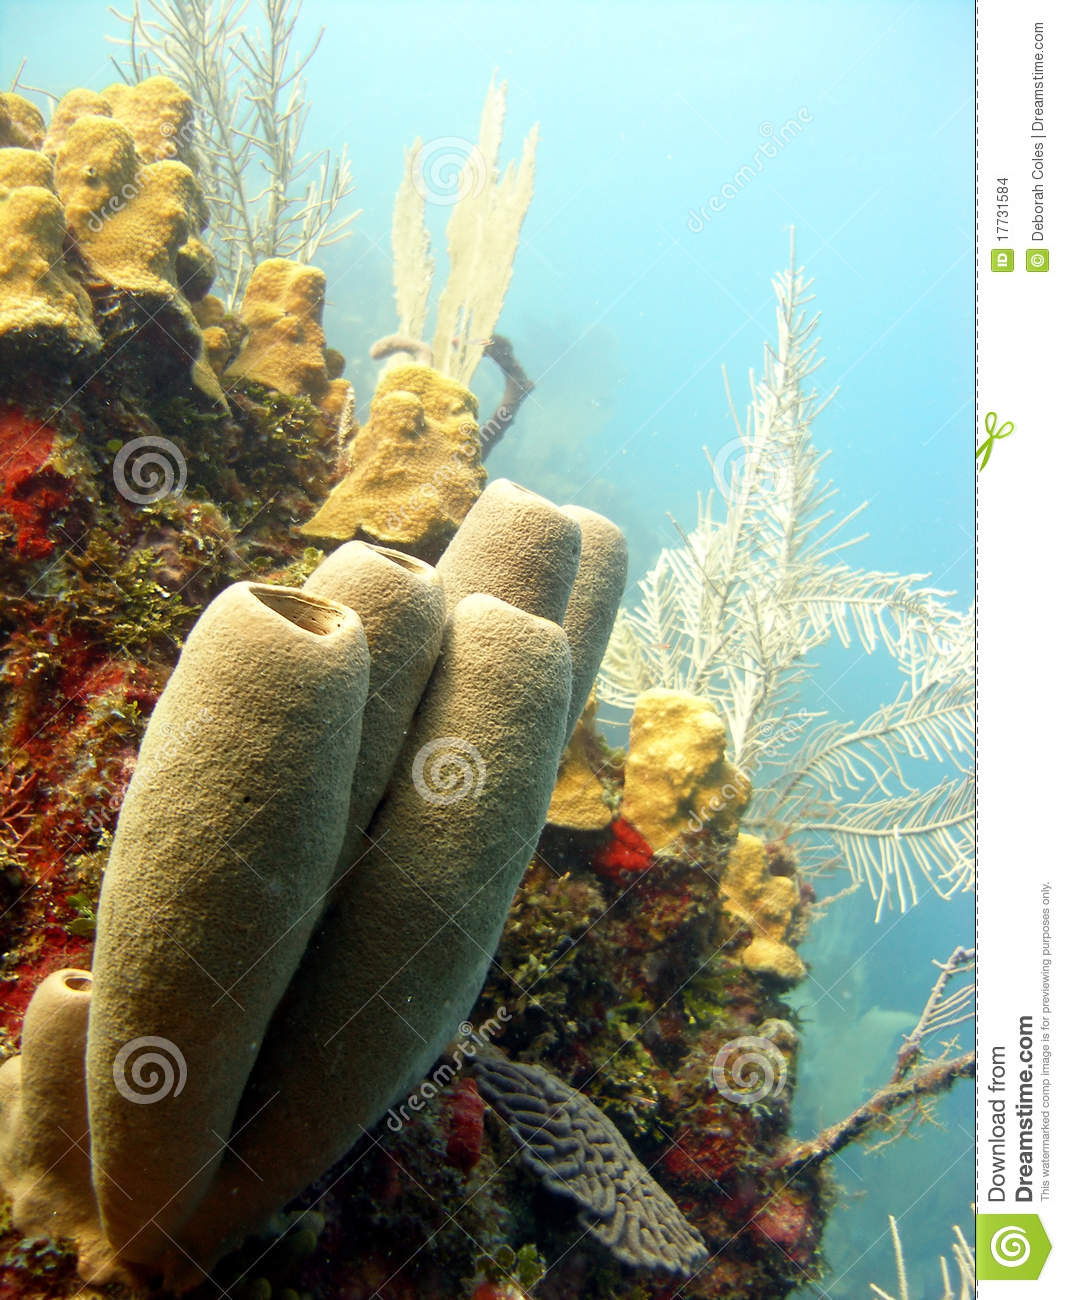 Colorful Wall Stickers Colourful Coral Reef Scene Stock Images Image 17731584